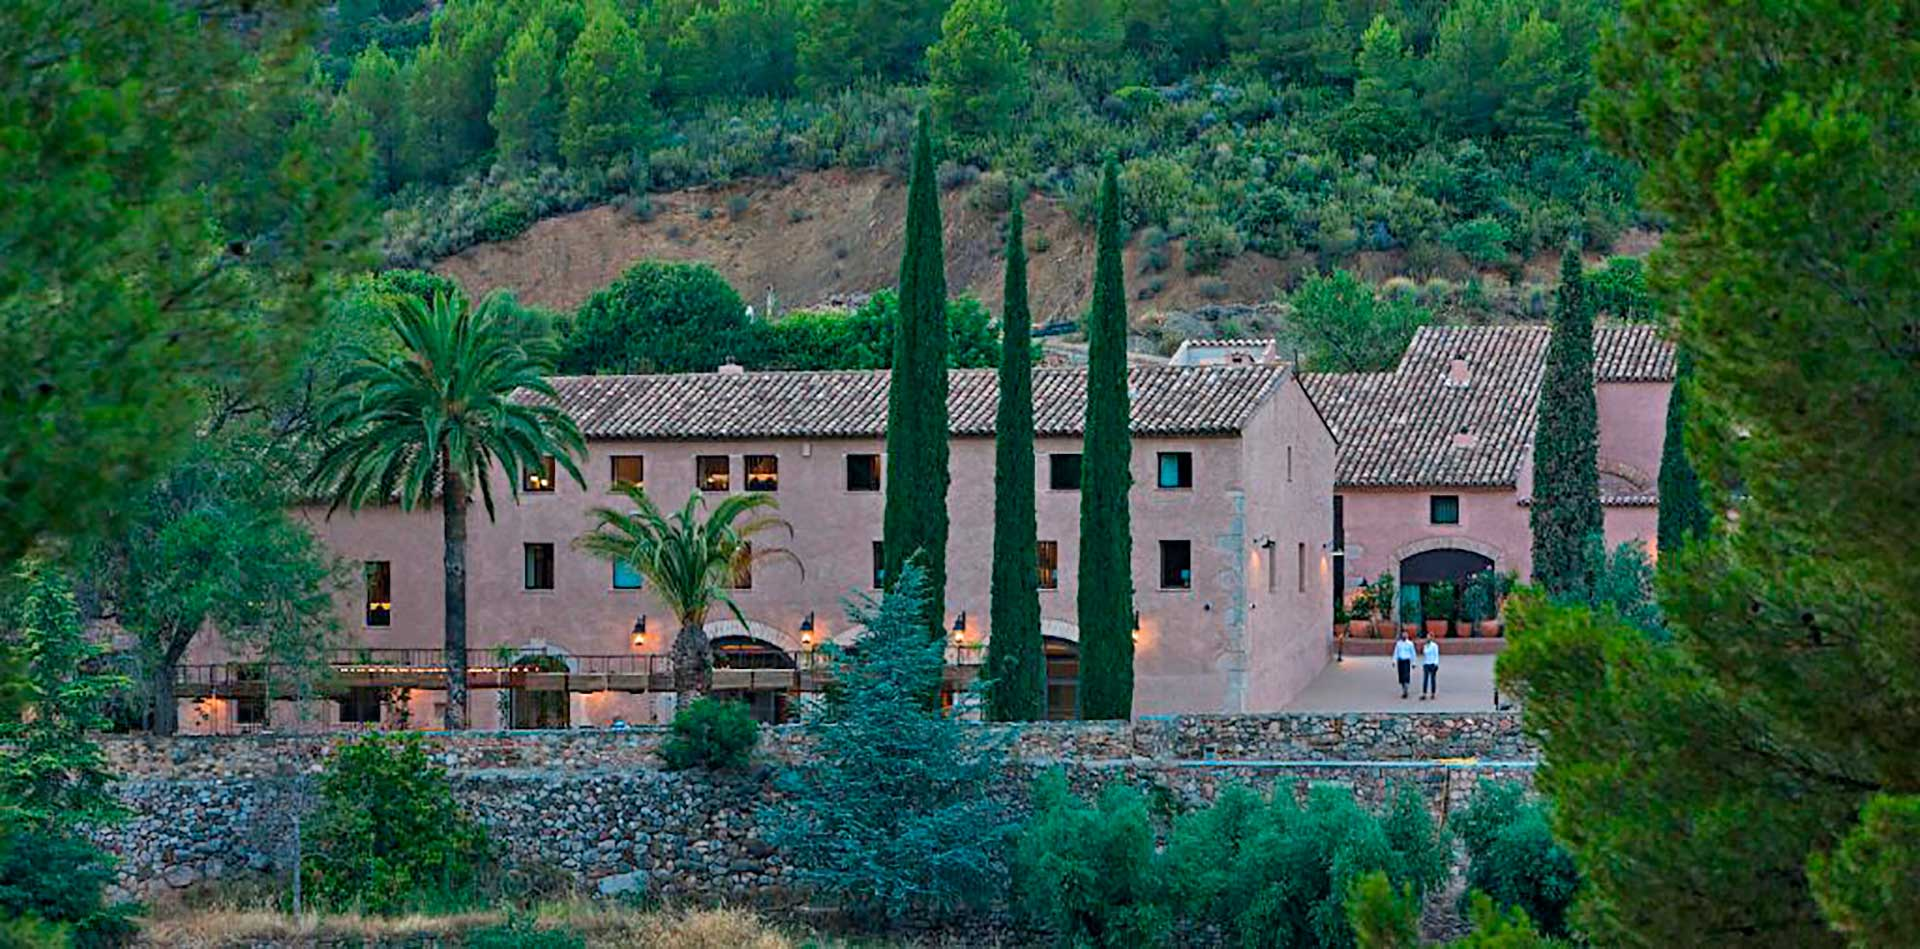 Terra Dominicata Hotel in Priorat, among the 6 best luxury hotels in Spain to elevate your trip